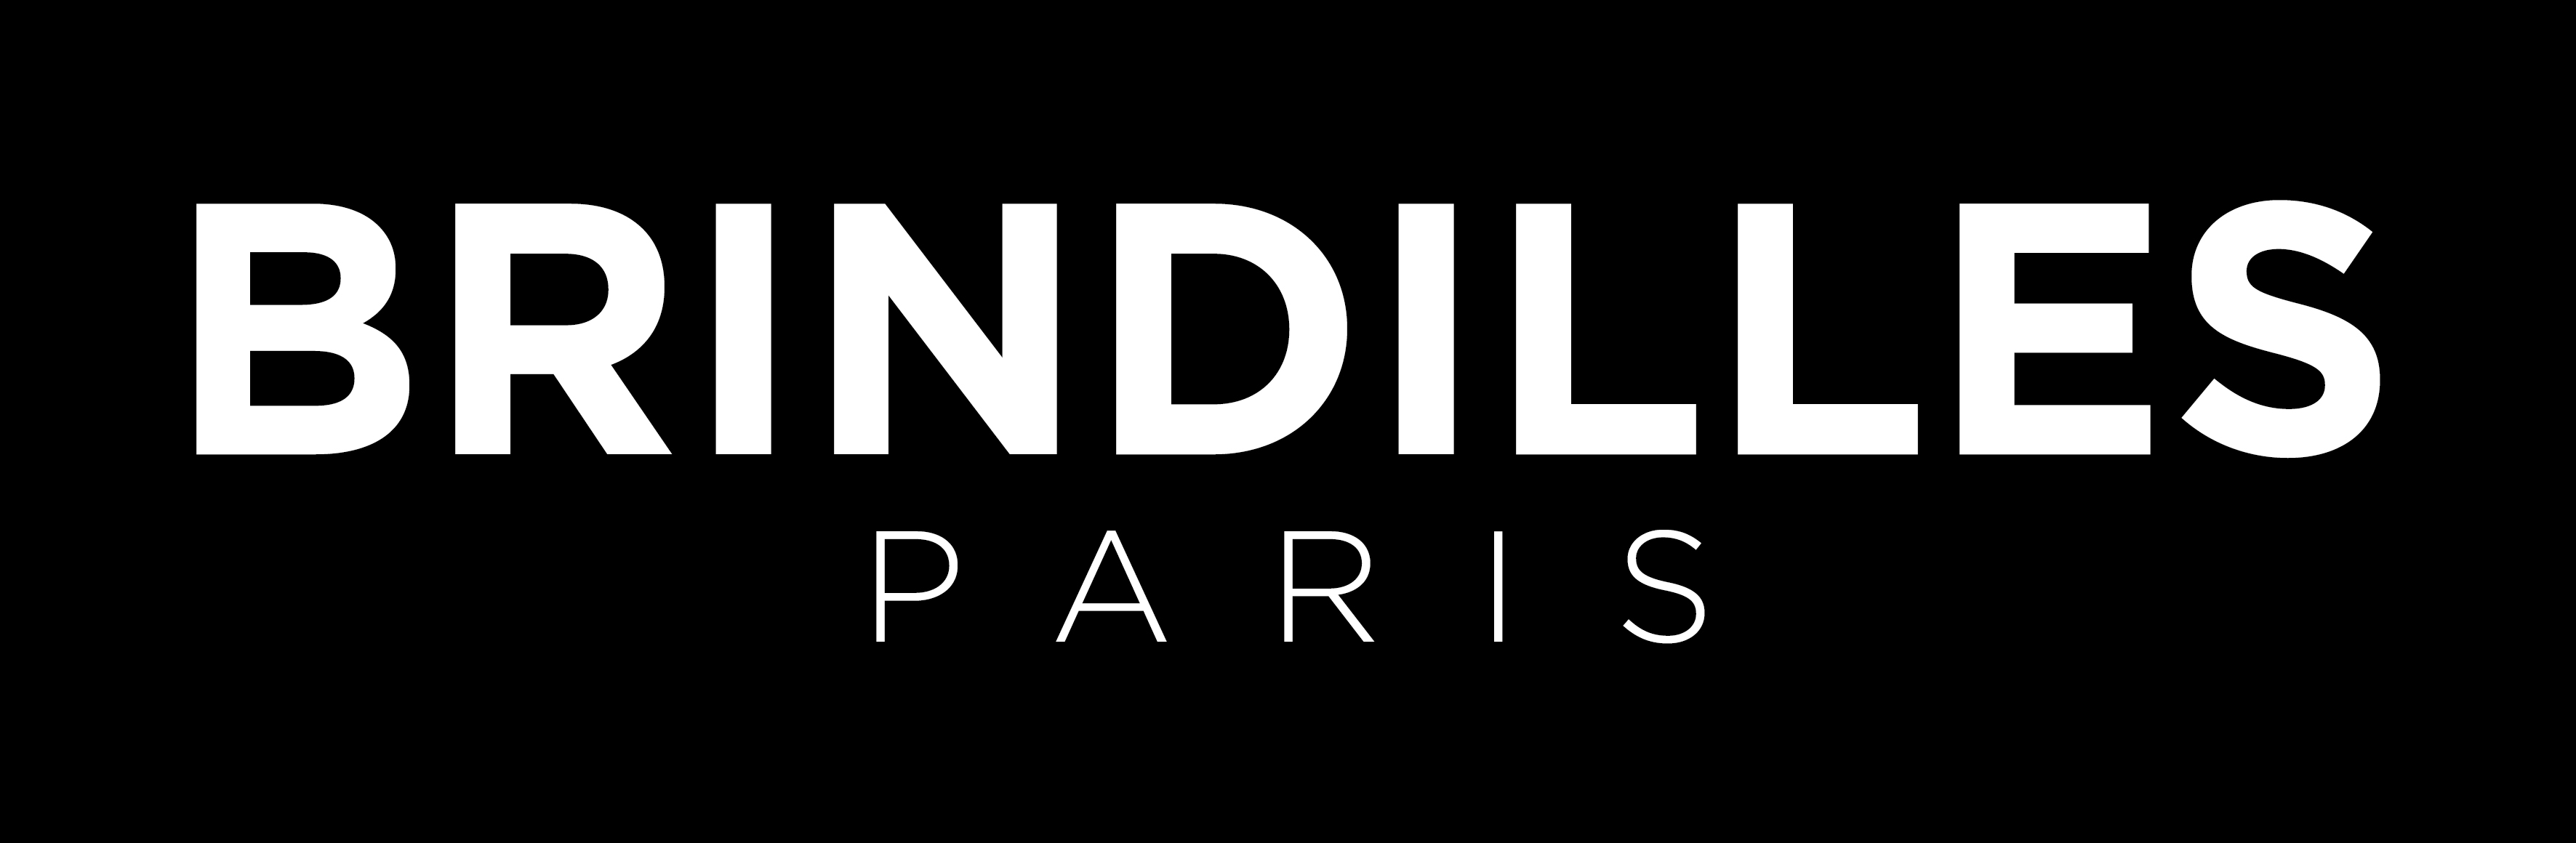 Brindilles Paris